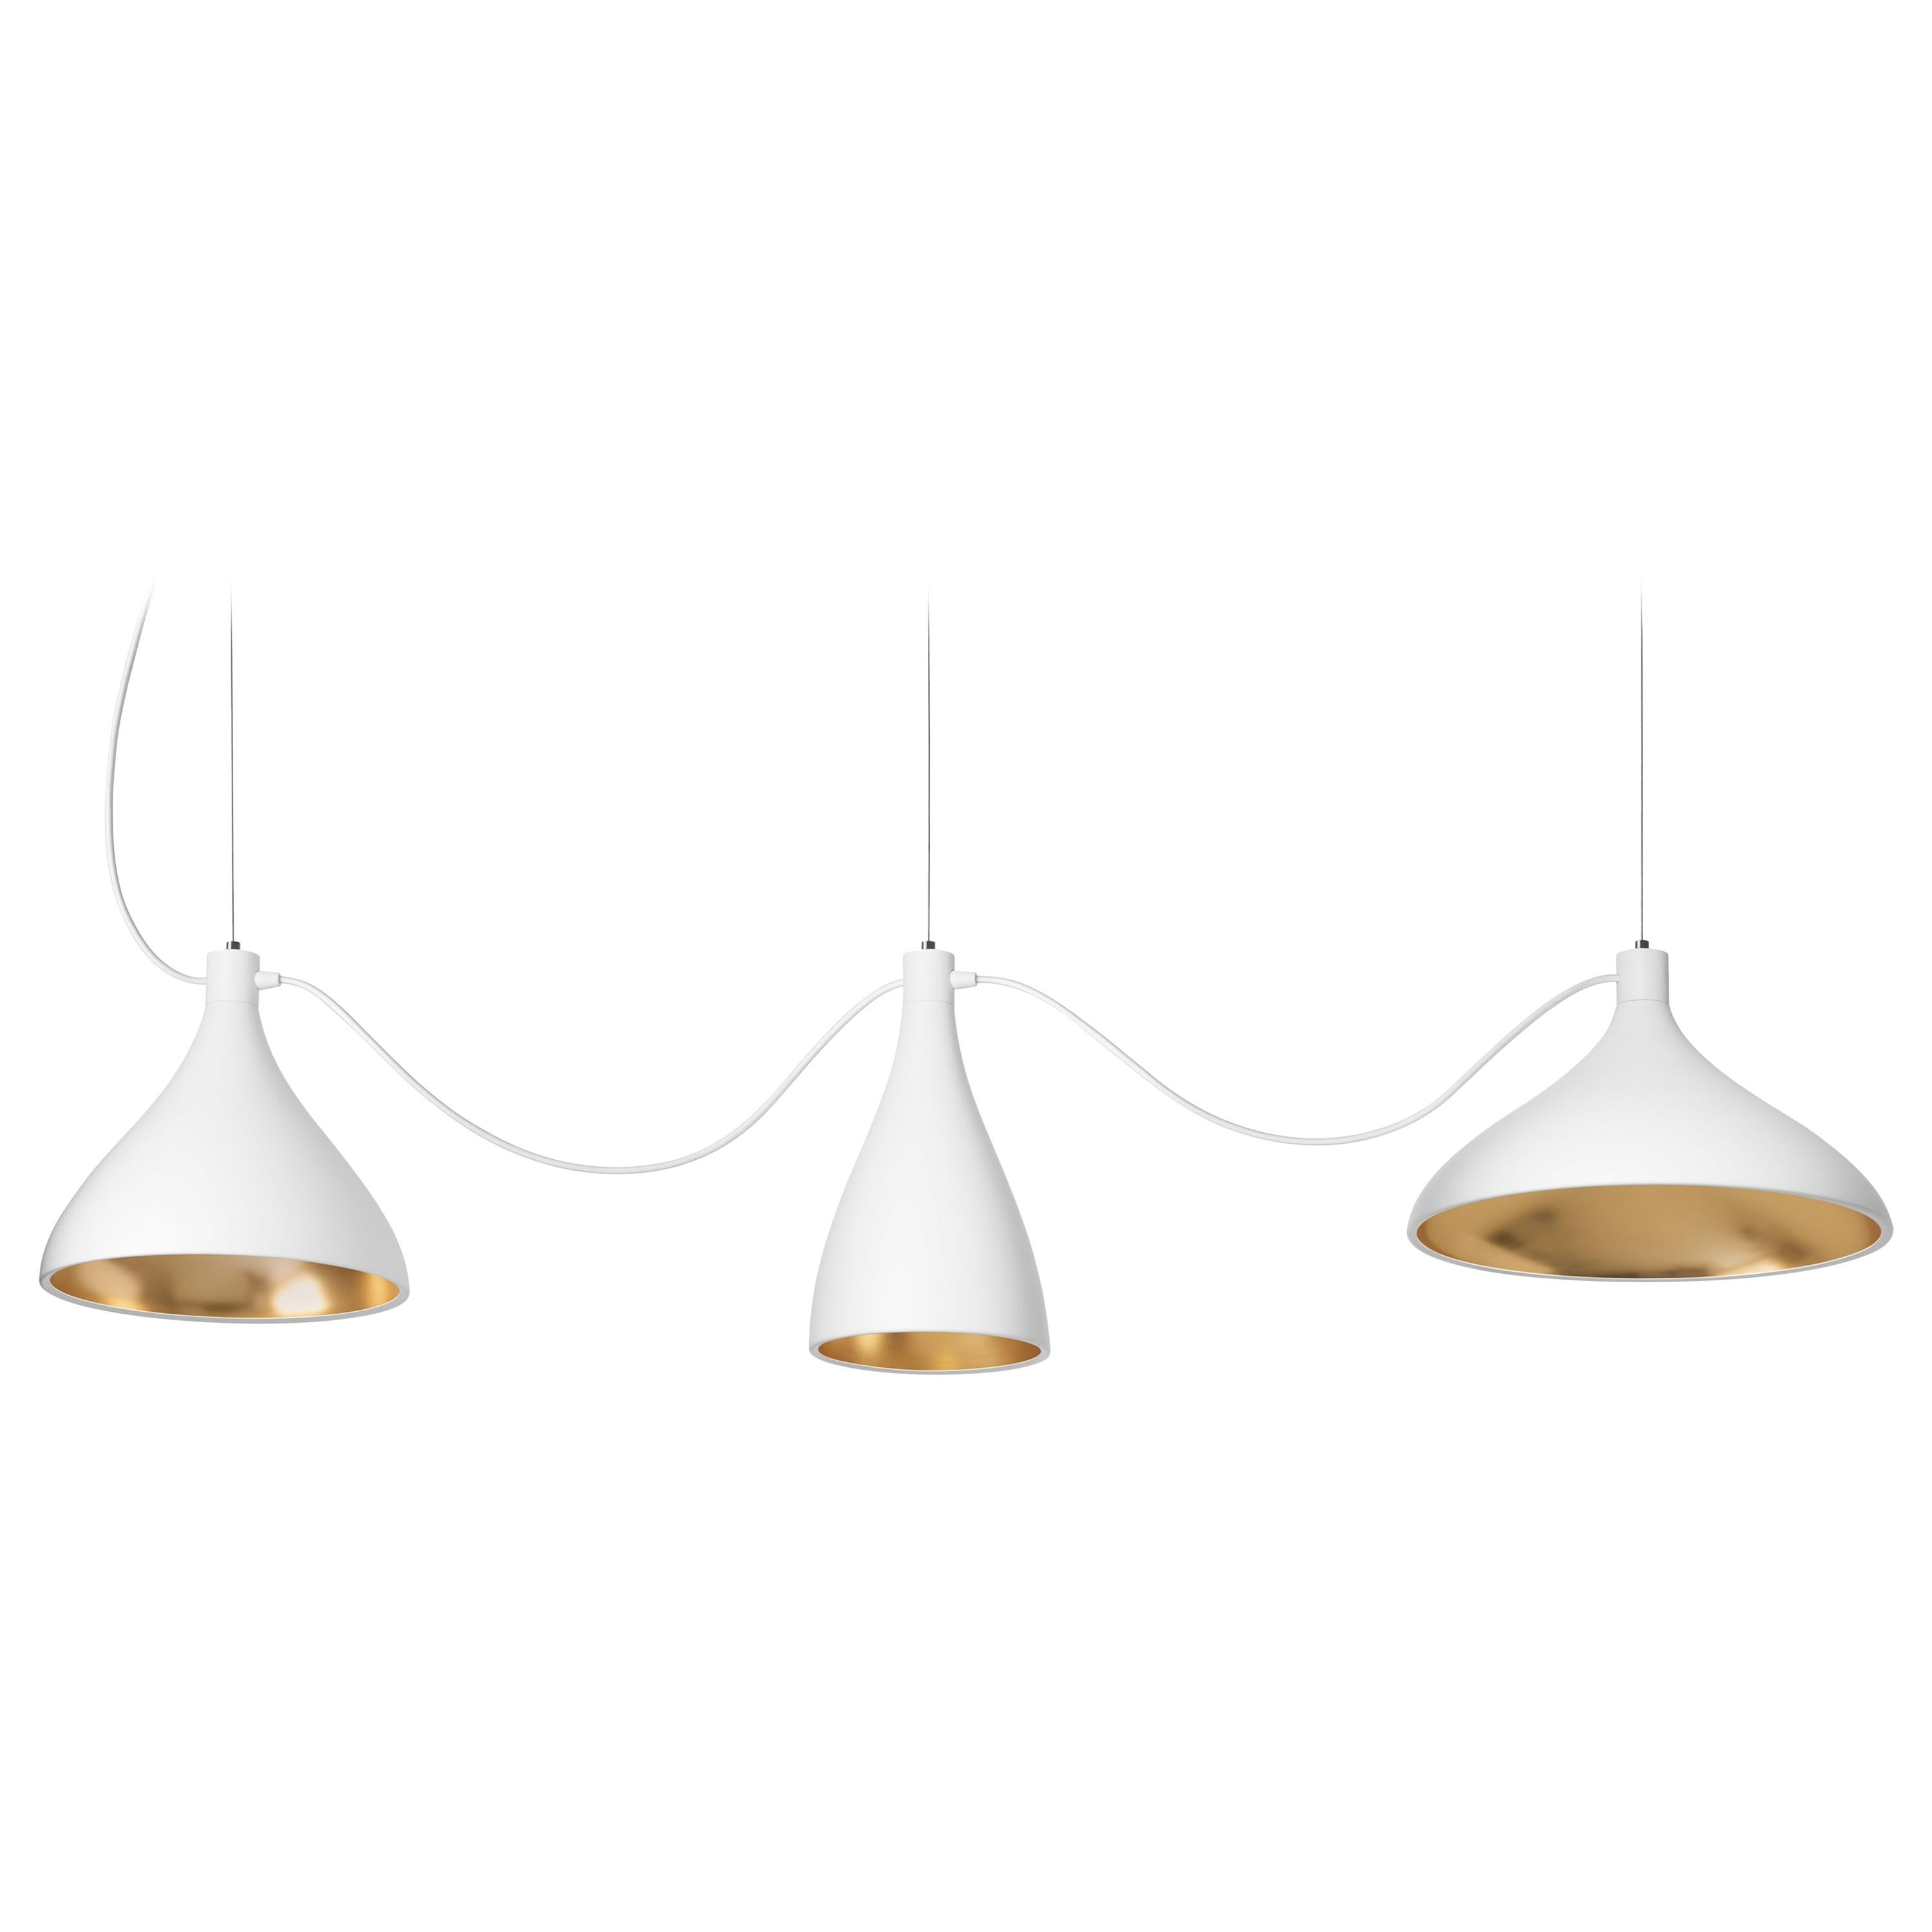 3-Piece Swell String Chandelier in White and Brass by Pablo Designs